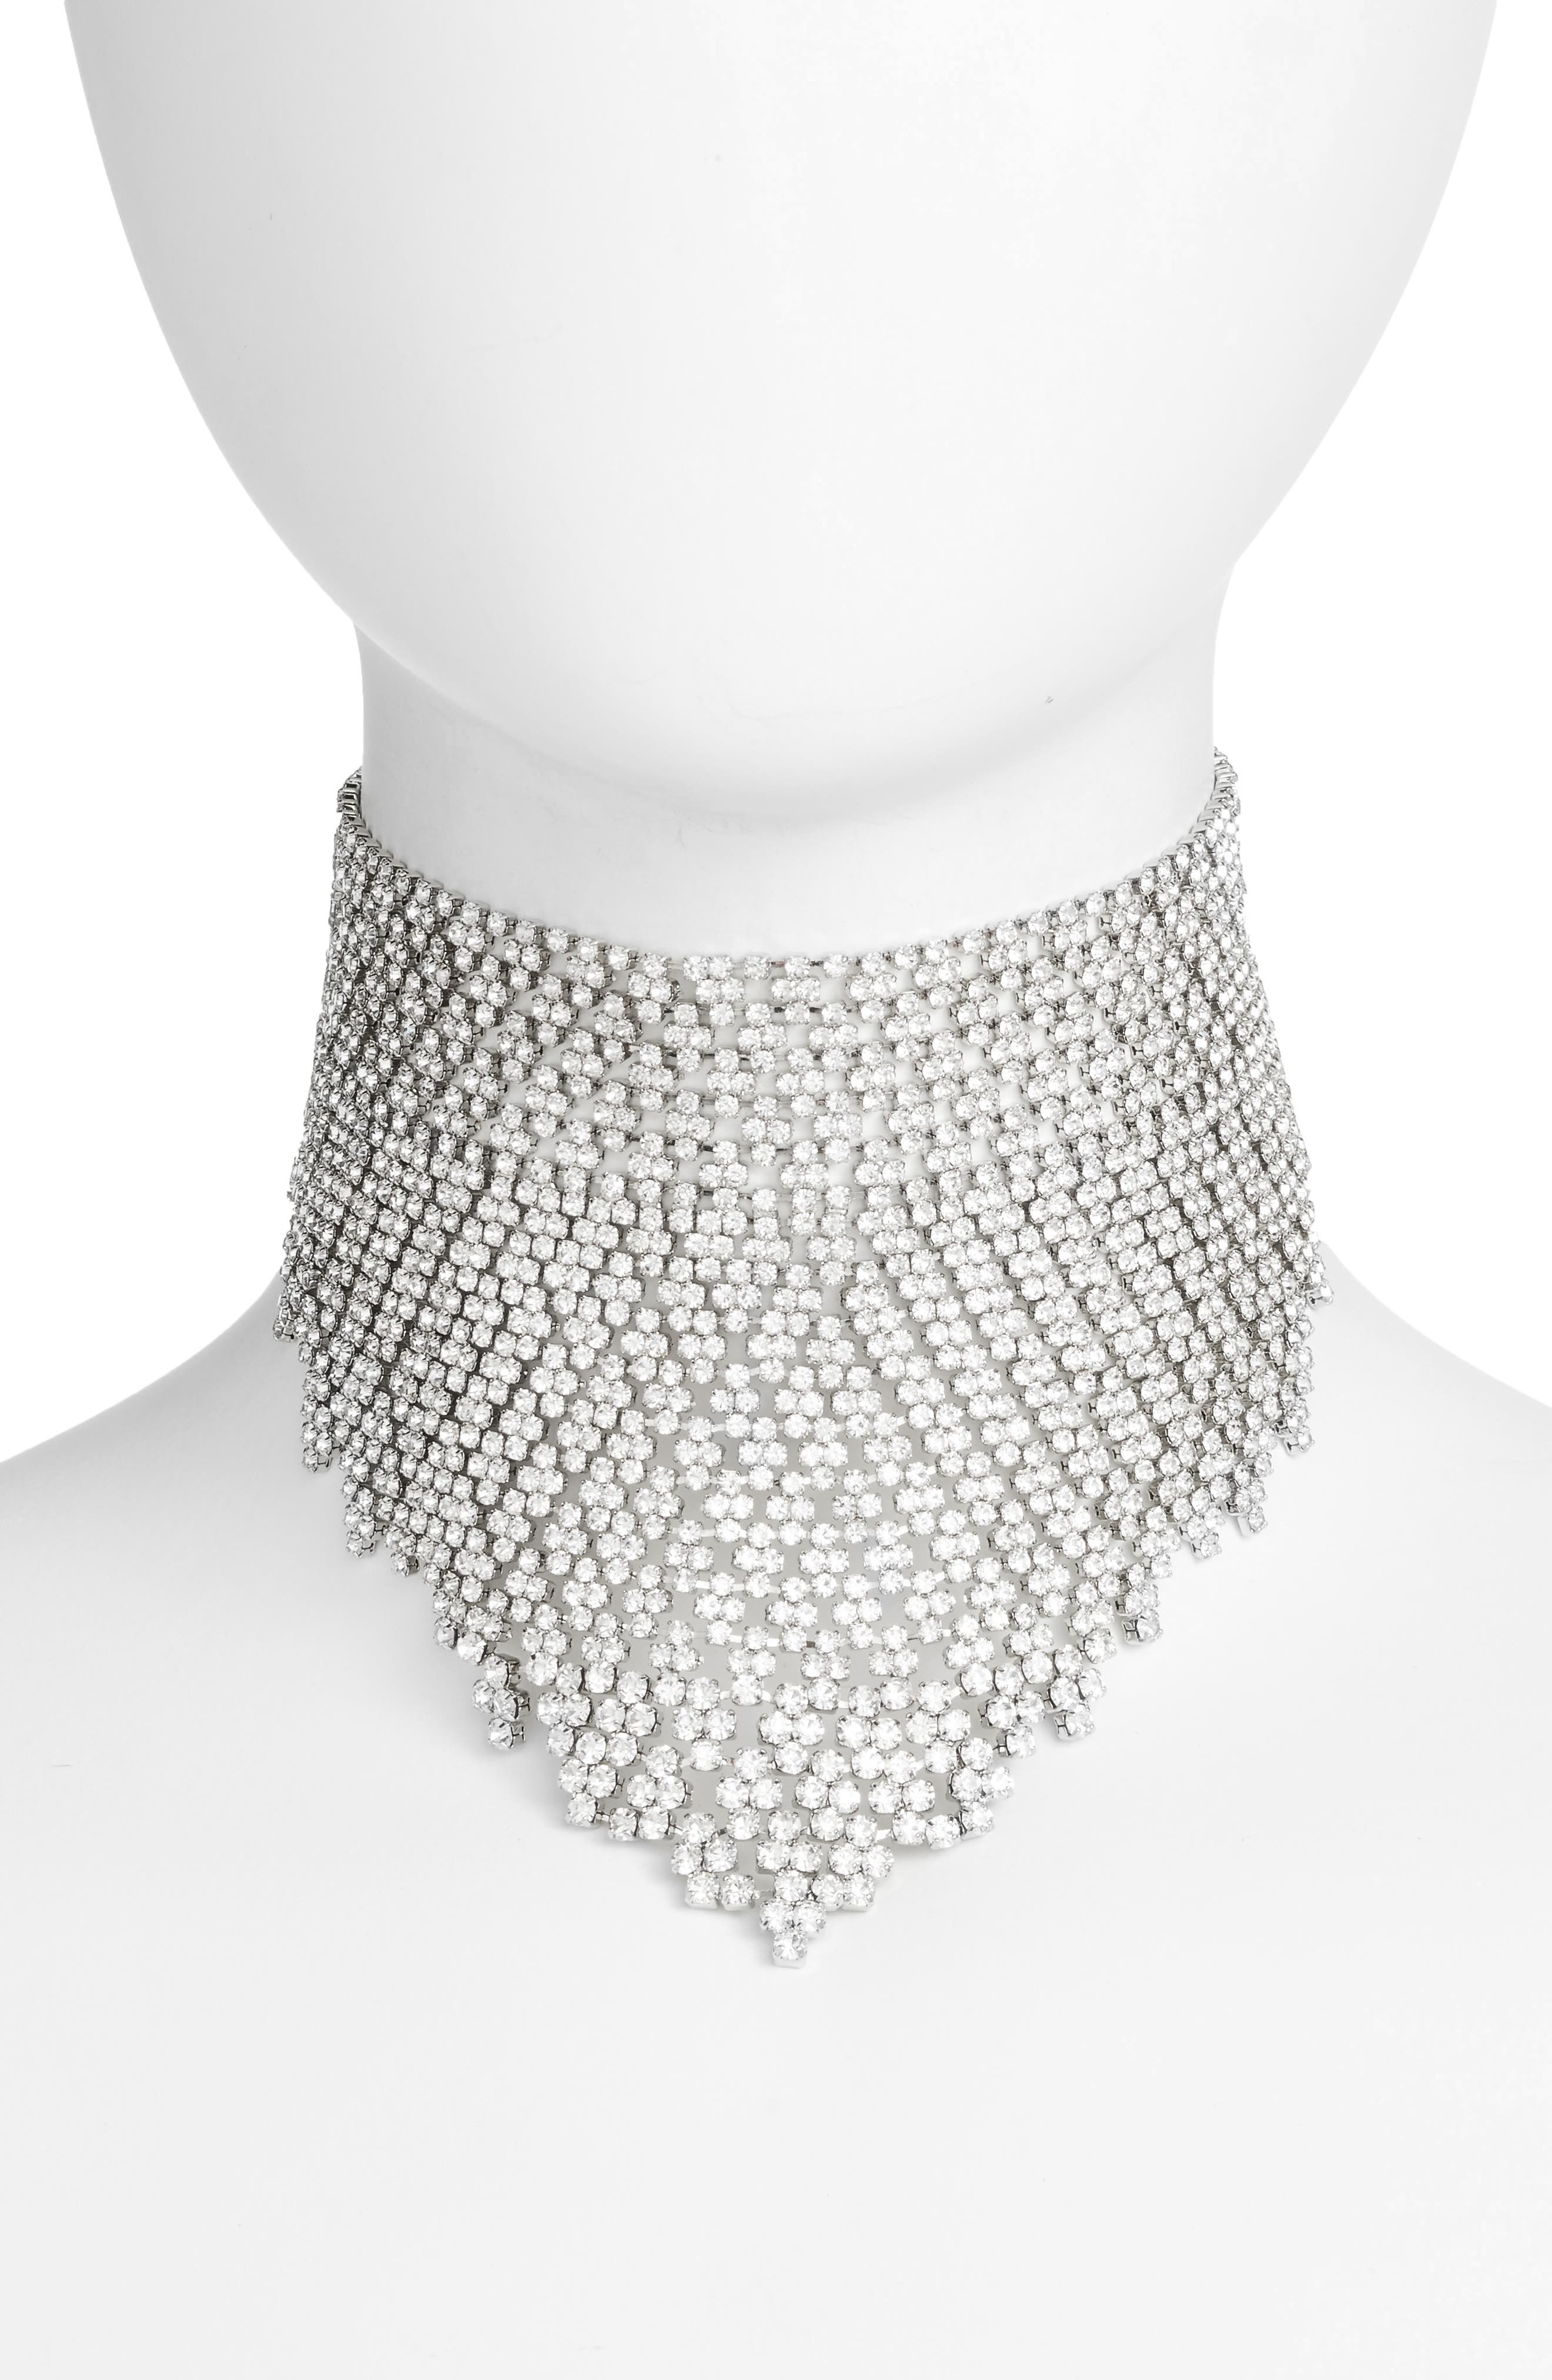 Alternate Image 1 Selected - CRISTABELLE Graduated Crystal Choker